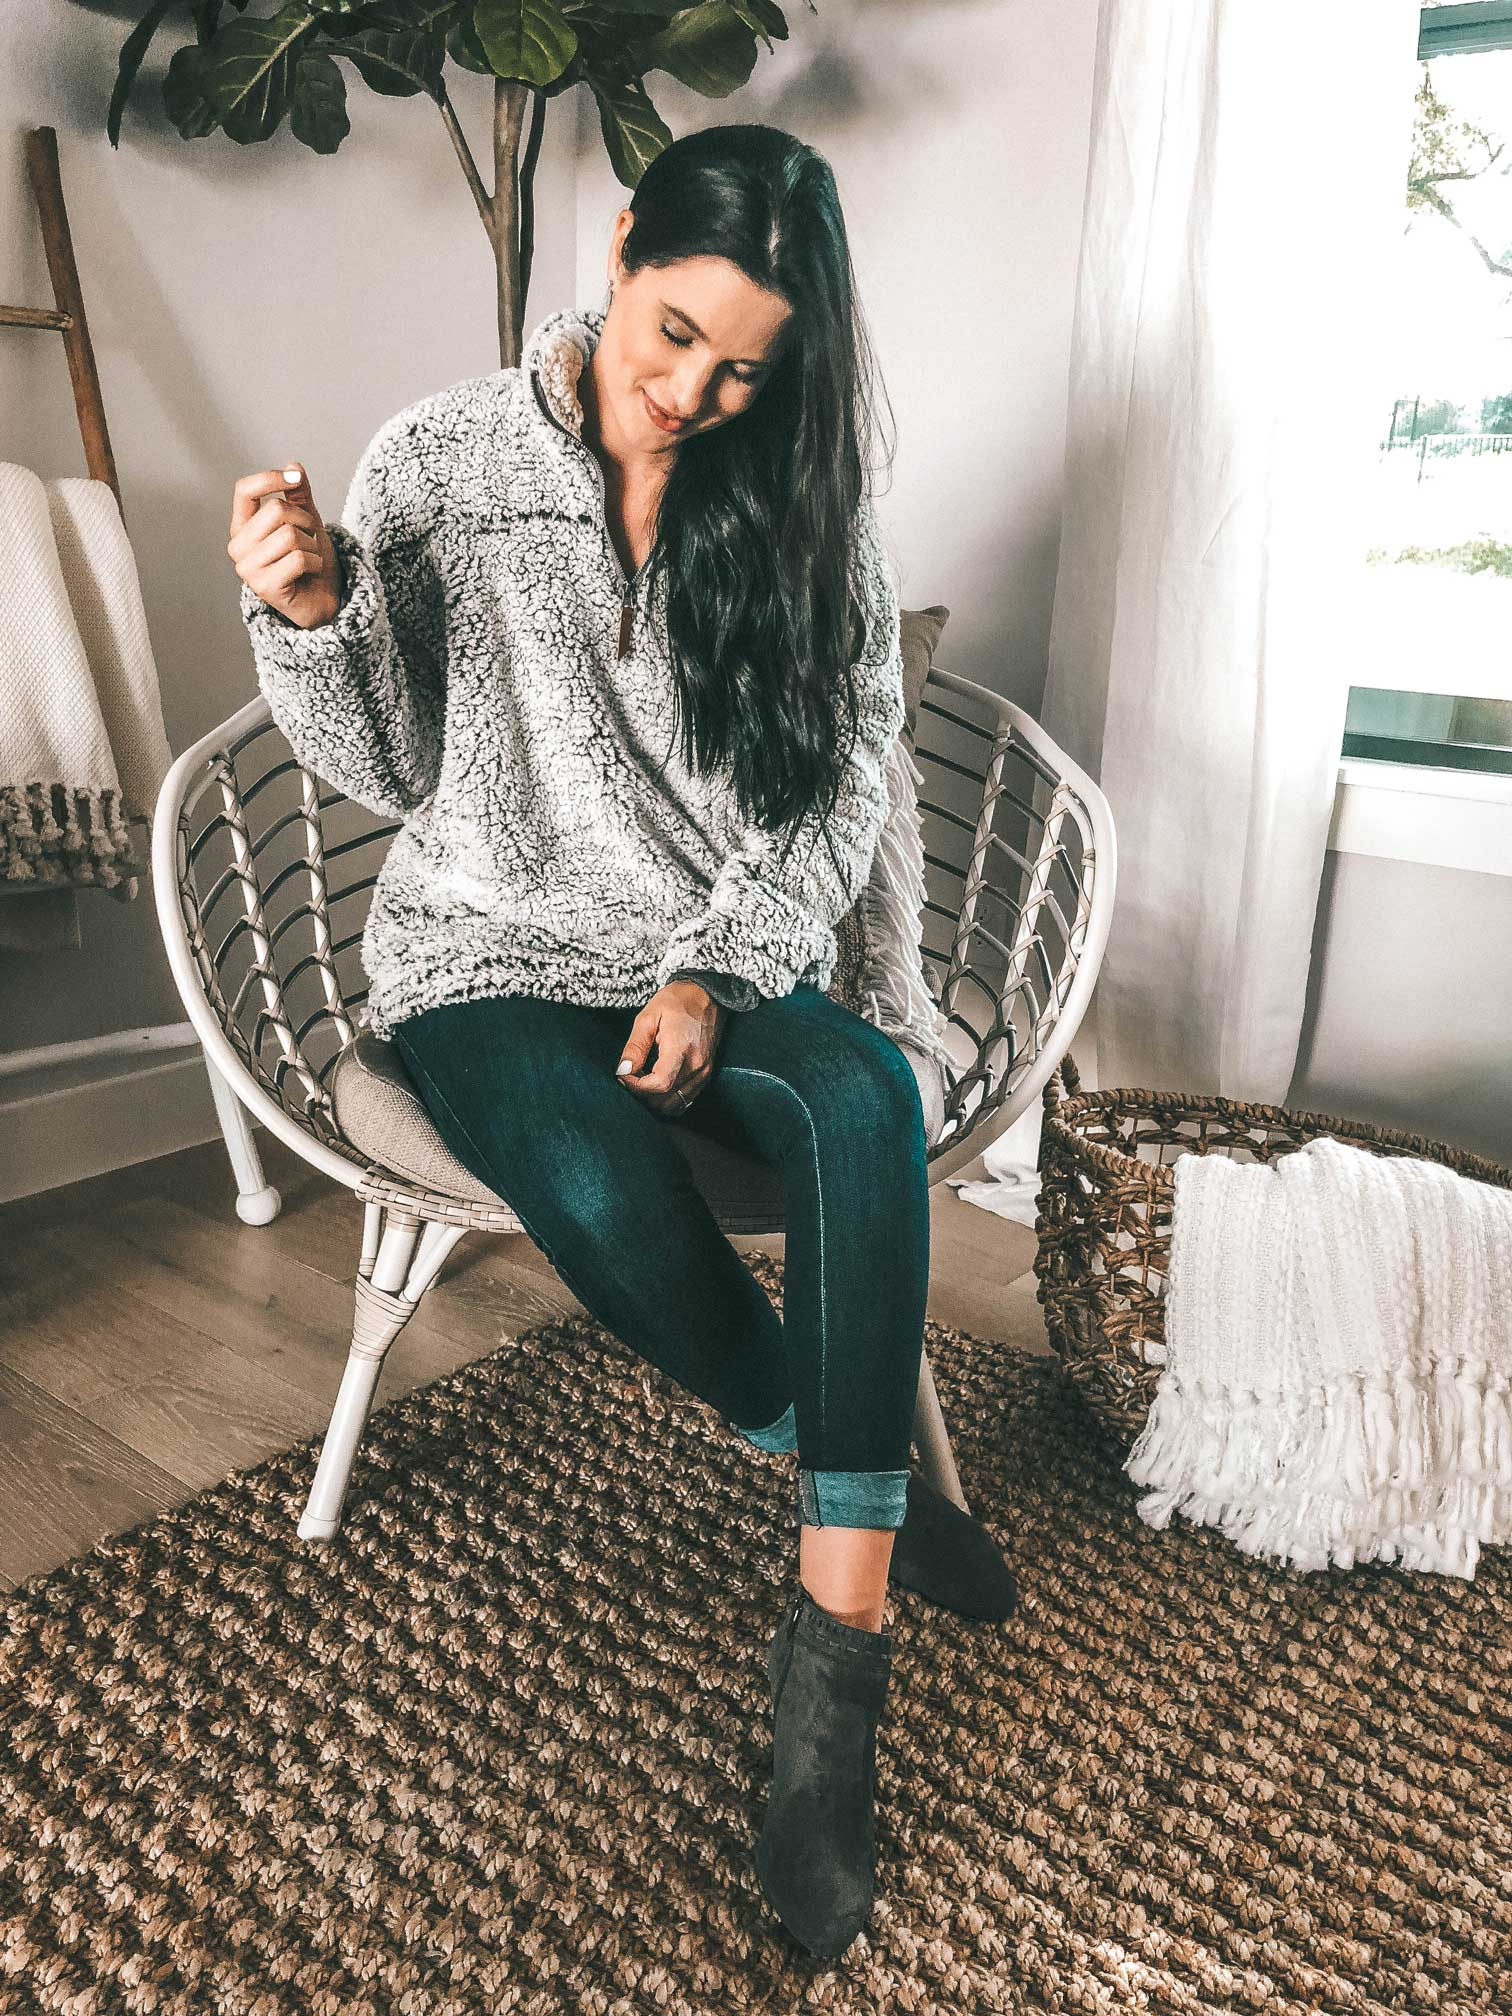 DTKAustin shares her 7 must have items from the 2018 Nordstrom Anniversary Sale NSALE. - Nordstrom Anniversary Sale Must Haves featured by popular Austin fashion blogger, Dressed to Kill    DTK Austin #nsale #nordstrom #anniversarysale #nordstromsale #fashion #style #fallstyle #winterstyle #womensoutfits #dtkaustin